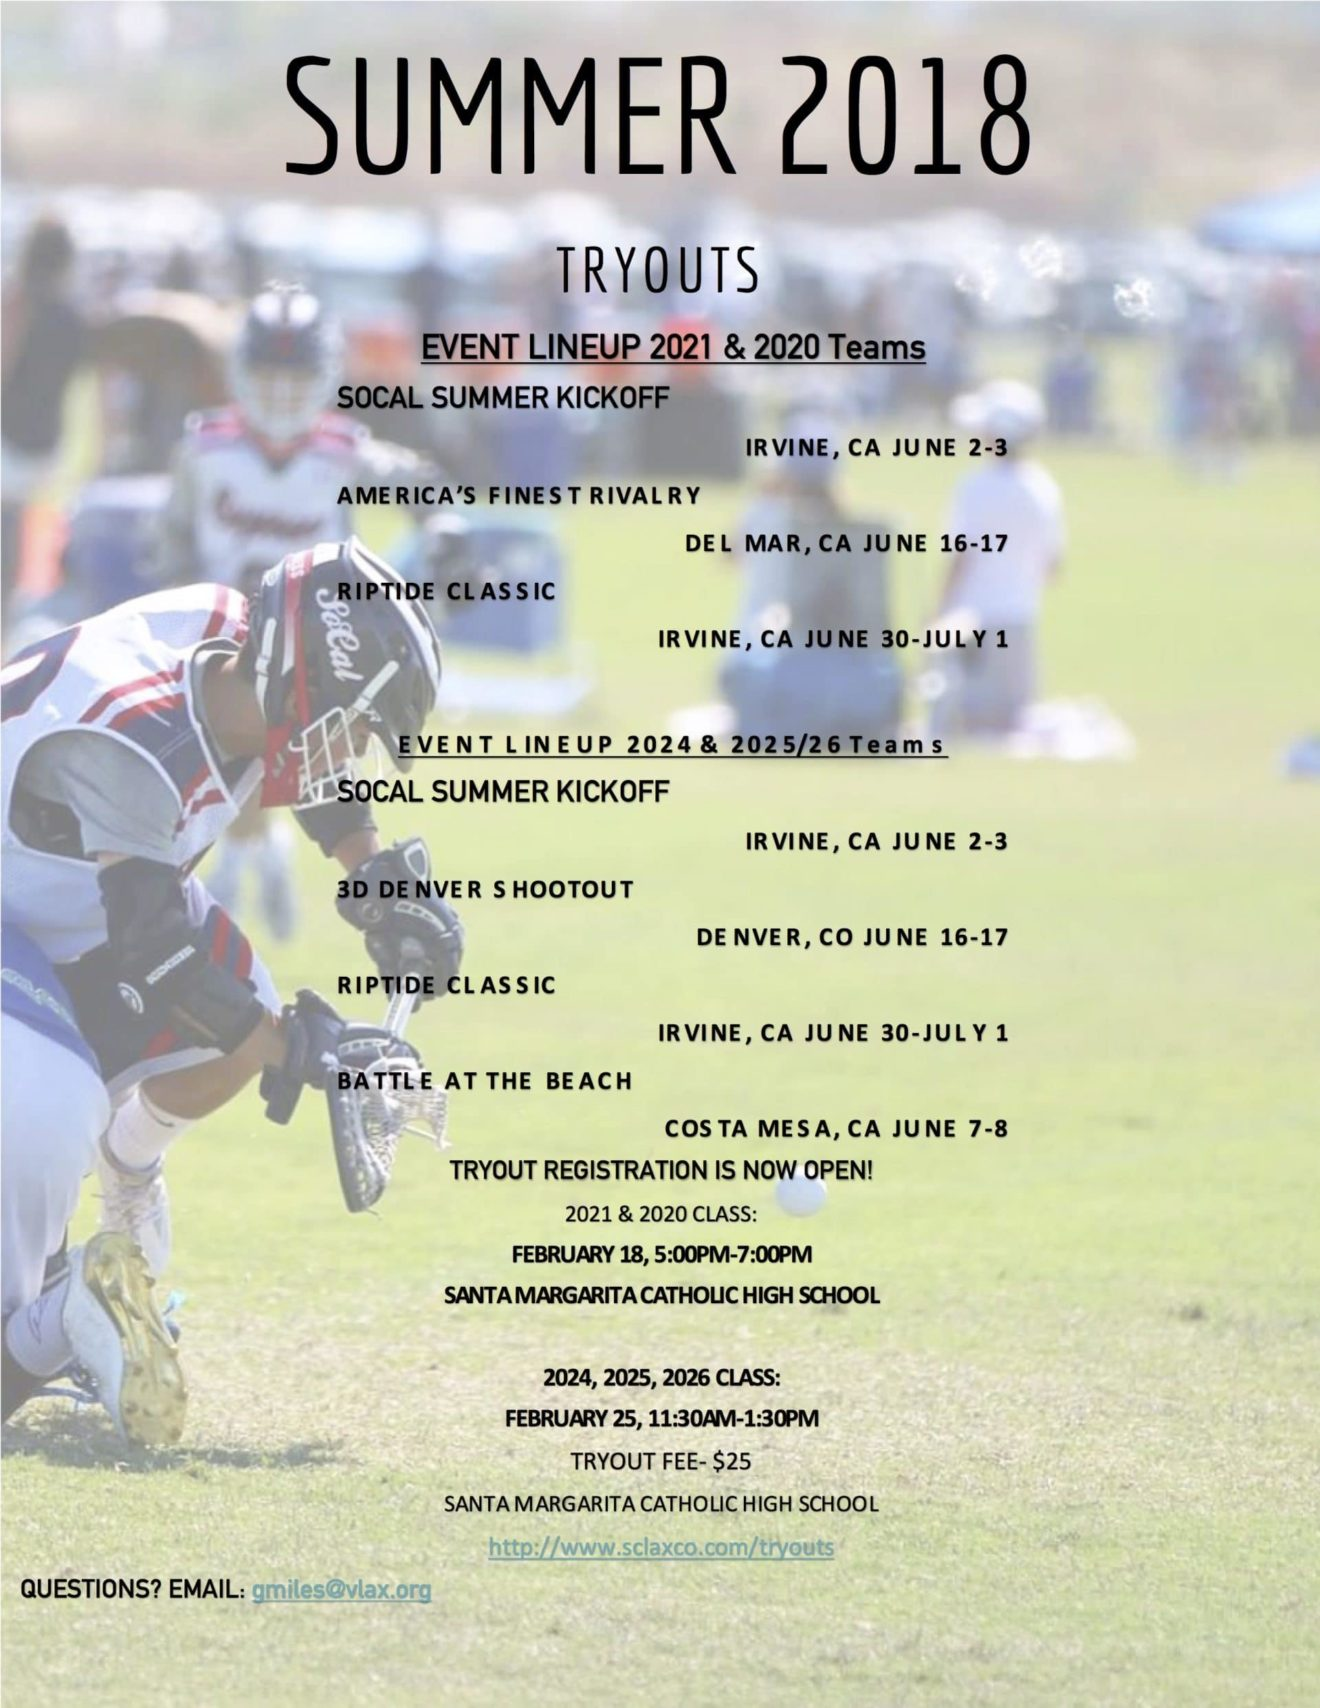 So Cal Express Summer 2018 Tryouts